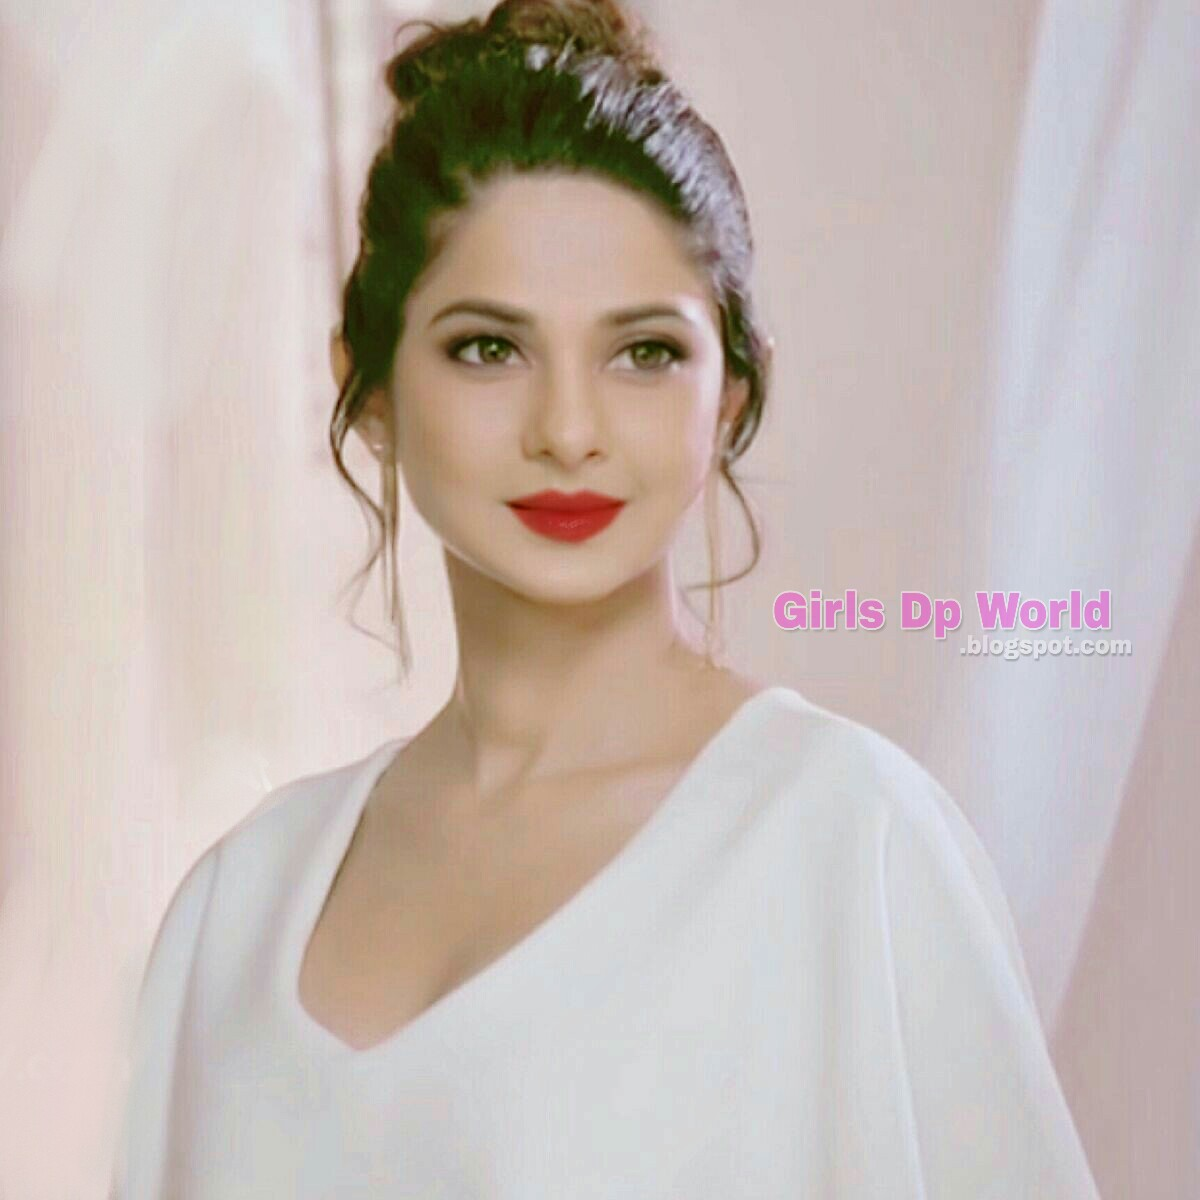 best jennifer winget images for whatsapp amp facebook dp